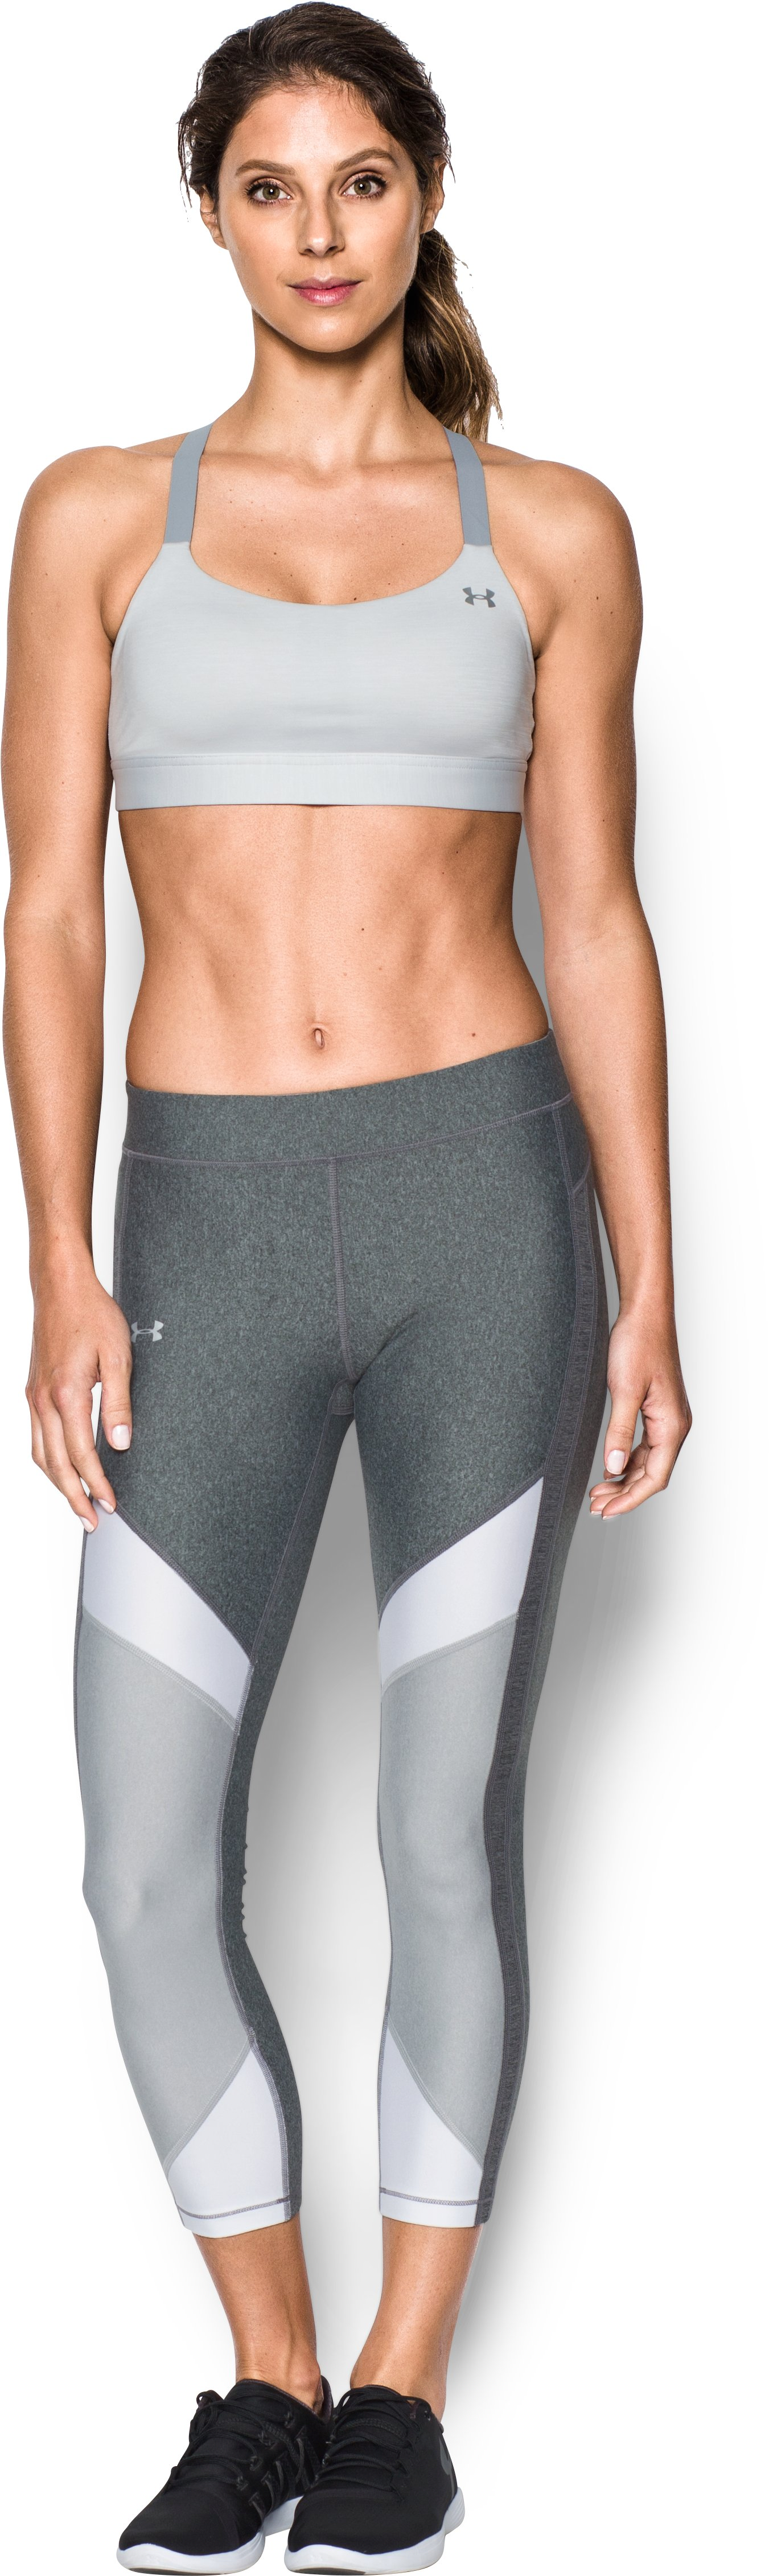 Women's Armour® Eclipse Heather Mid Impact Sports Bra, AIR FORCE GRAY HEATHER, zoomed image